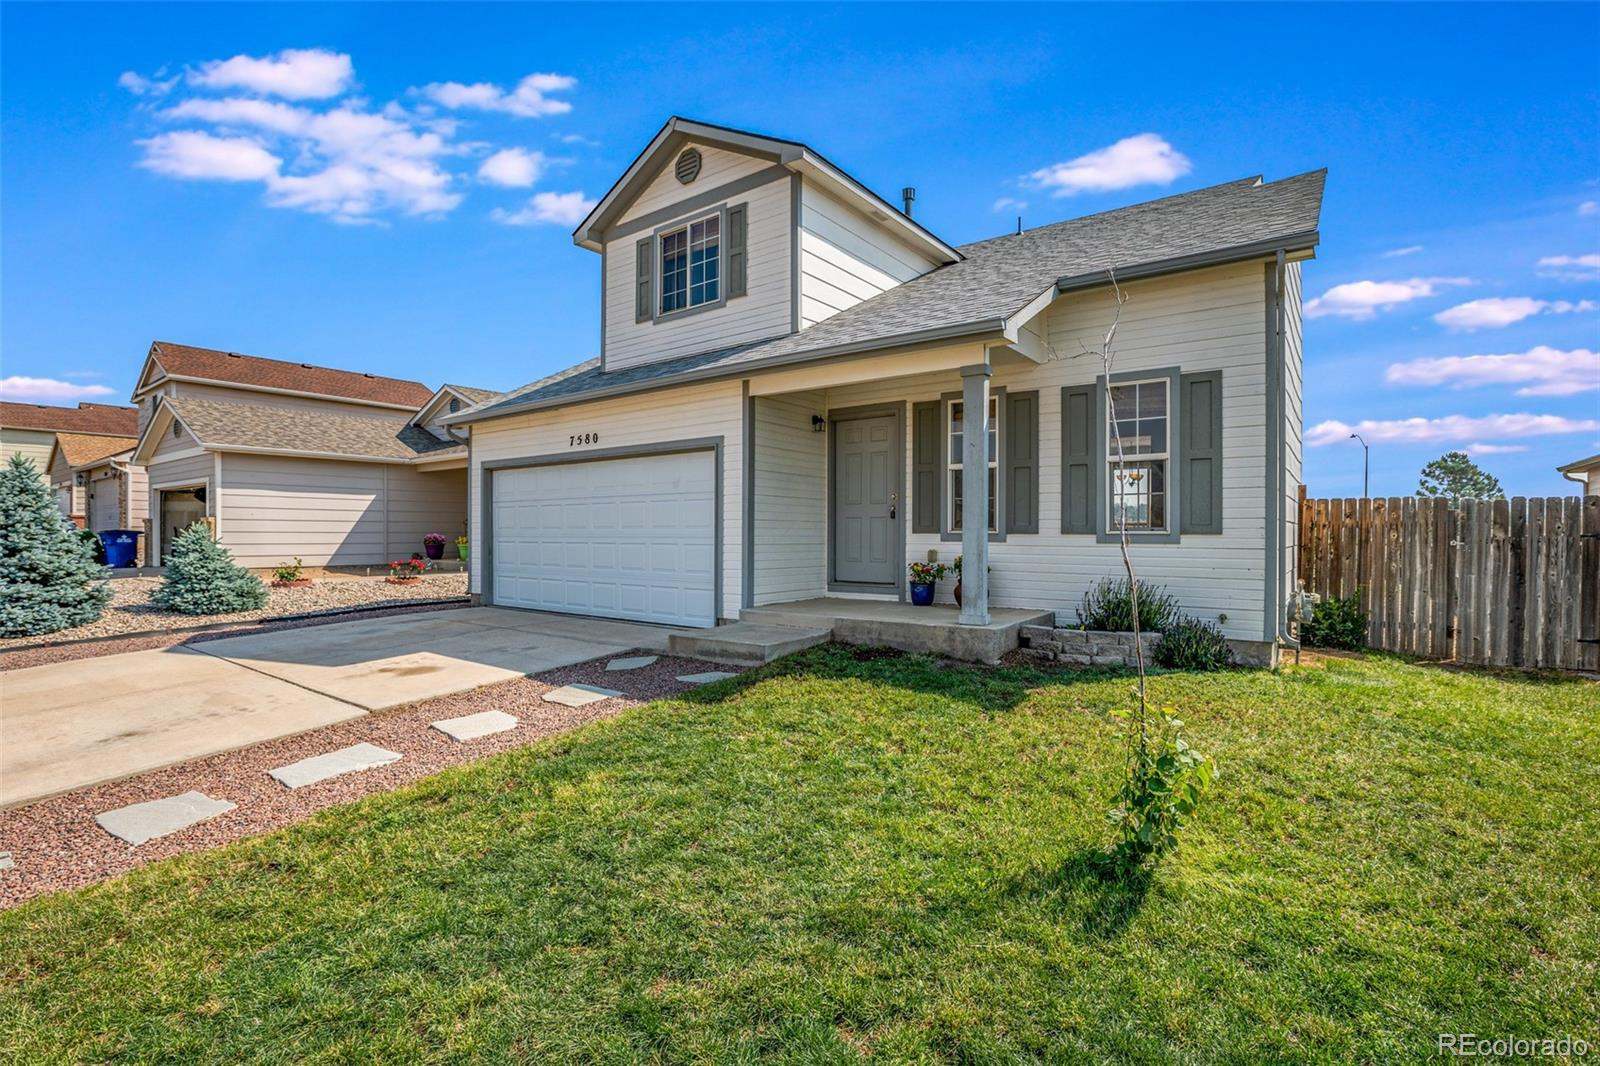 MLS# 6387968 - 2 - 7580 Middle Bay Way, Fountain, CO 80817